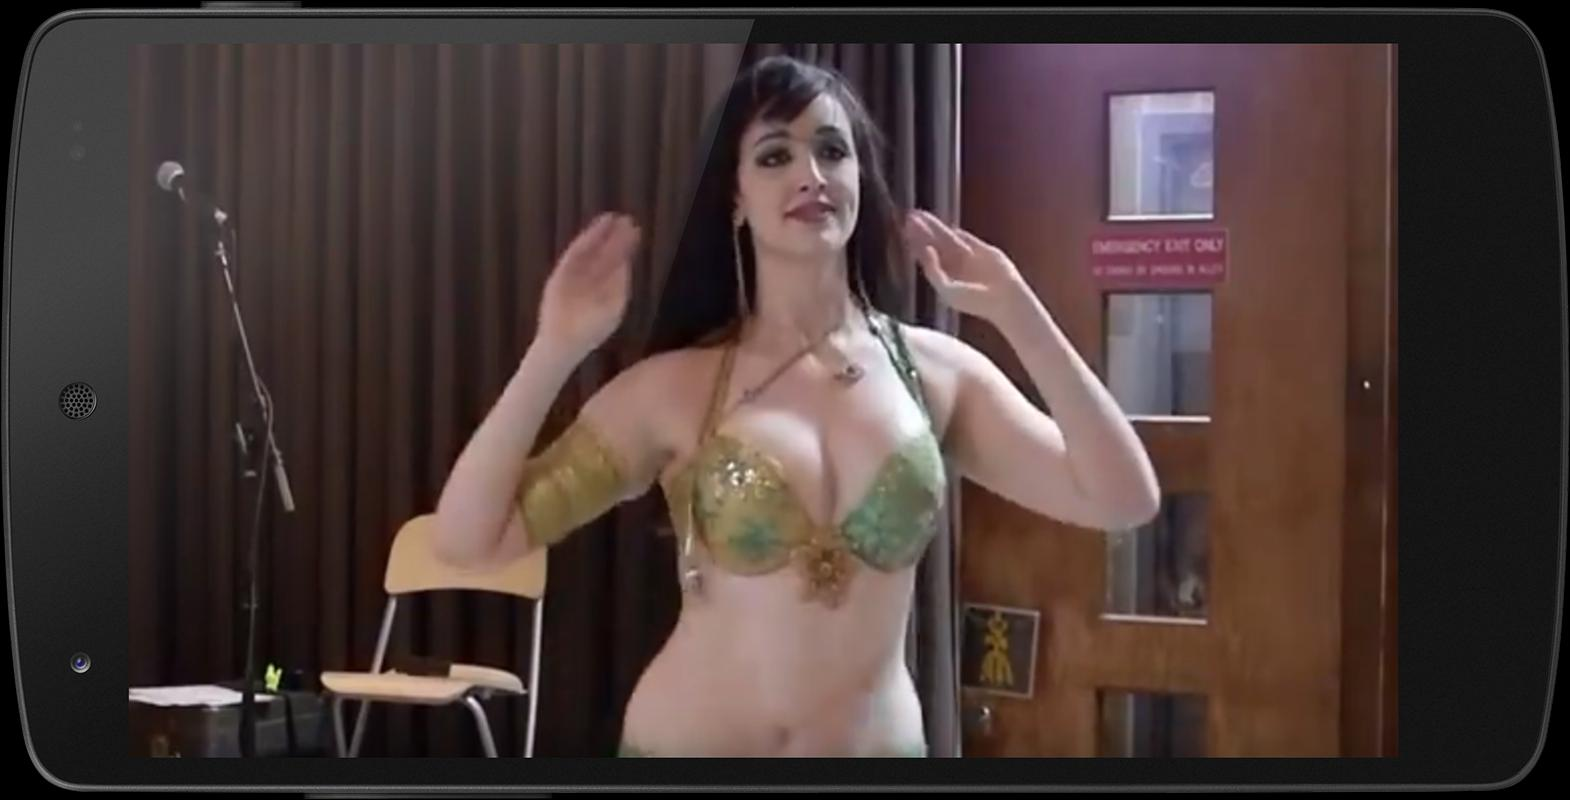 Amazing Sexy Video Download sexy video of belly dance for android - apk download